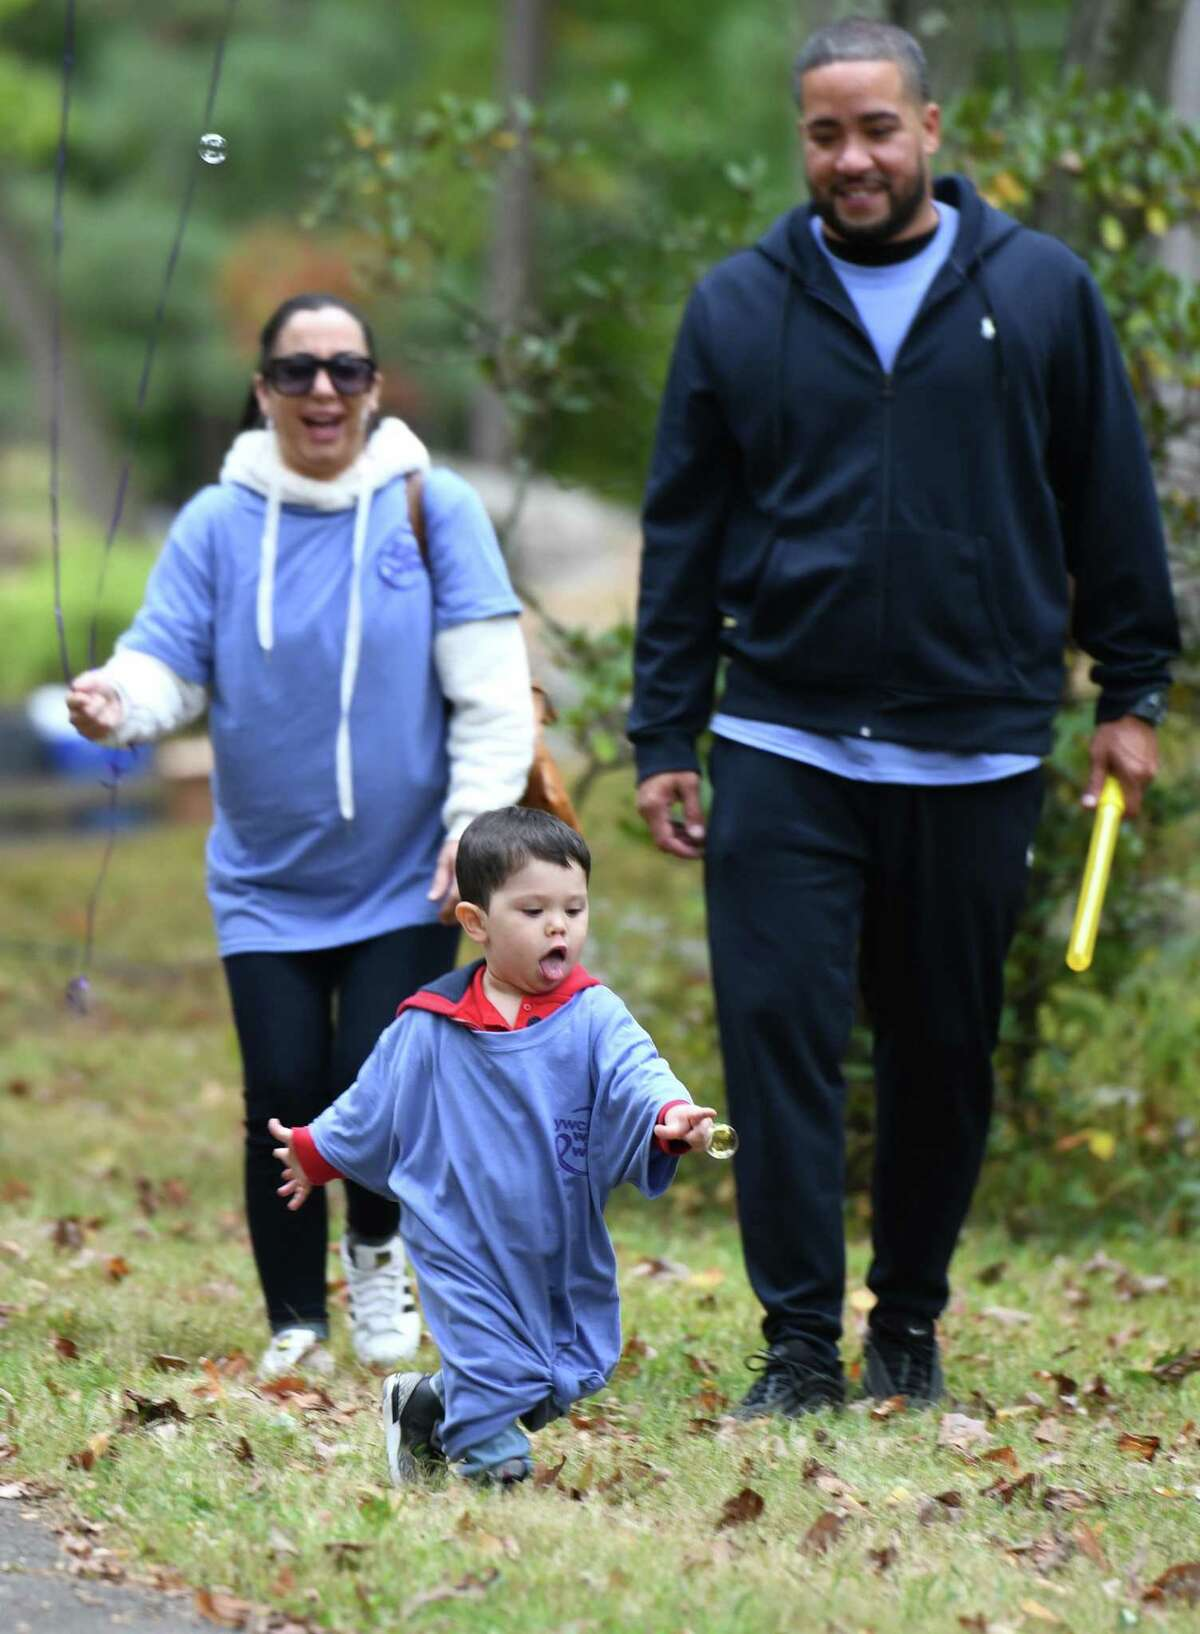 Lucas Rivera, 2, of Bronx, N.Y., pops a bubble while walking in the YWCA Greenwich Walk the Walk Against Domestic Violence at Bruce Park in Greenwich, Conn. Sunday, Oct. 6, 2019. 250 people participated in the walk to raise awareness and funds for the YWCA's domestic abuse services and education. October is Domestic Violence Awareness and Prevention Month and the YWCA provides vital community services to victims of domestic abuse, responding to more than 3,700 calls last year alone.